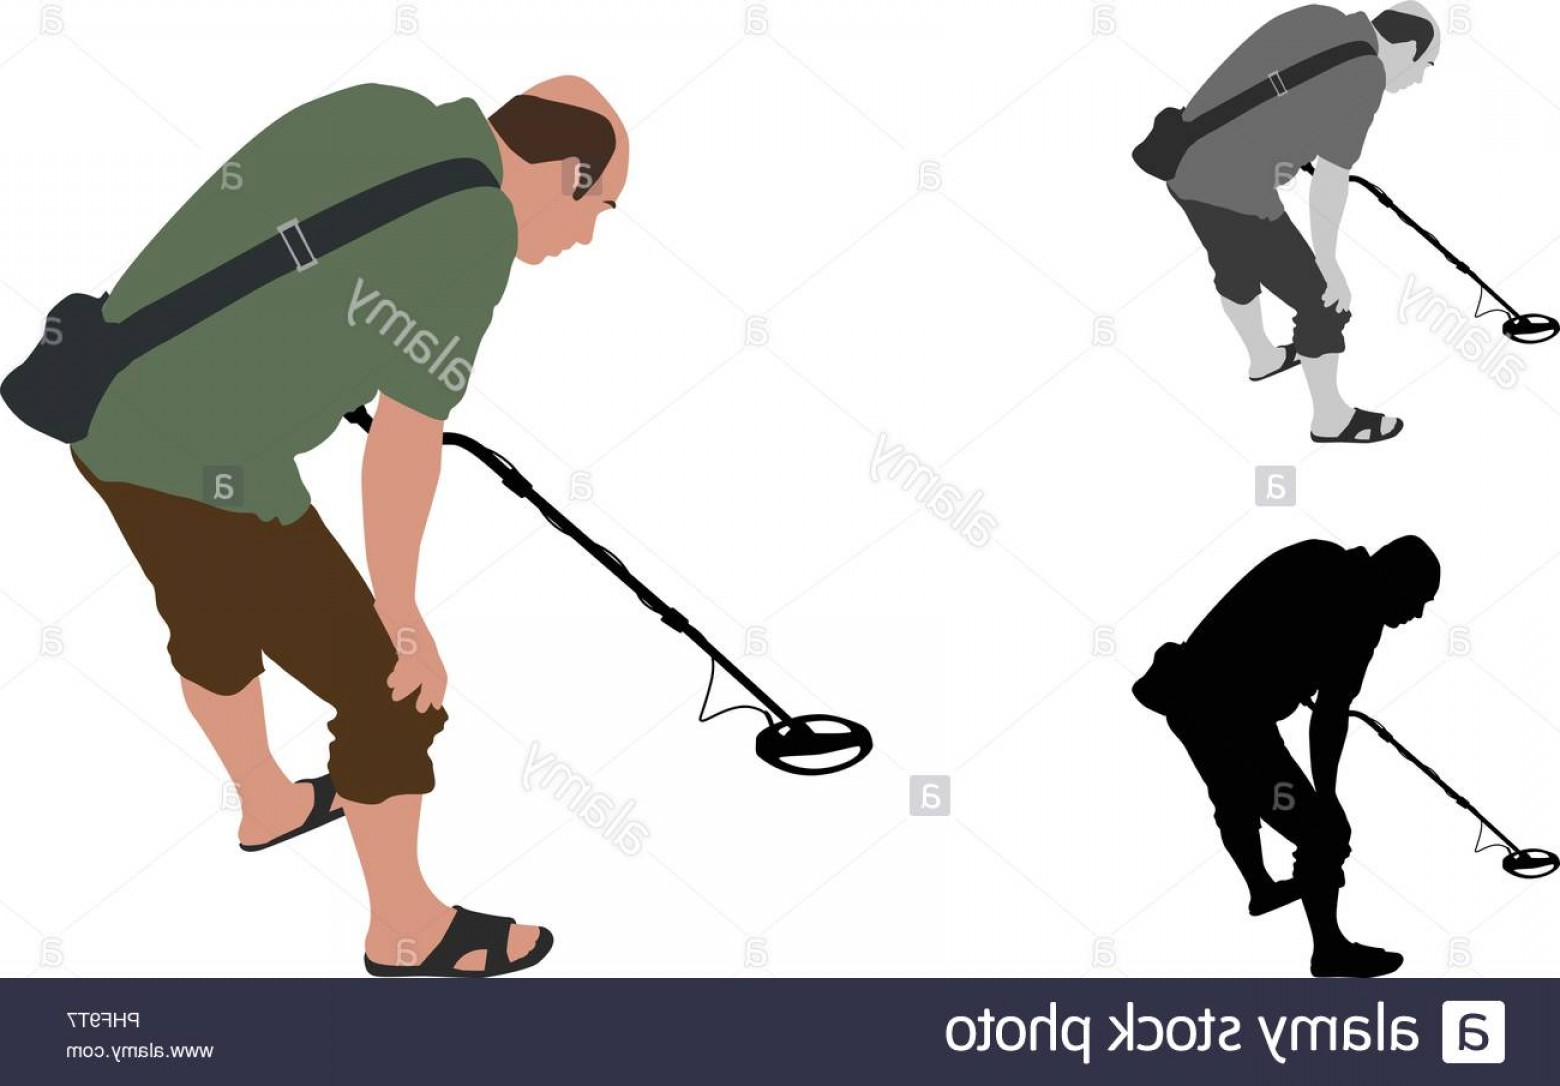 Vector Metal Detector: Man With Shorts And Slippers Using Metal Detector On Beach Image